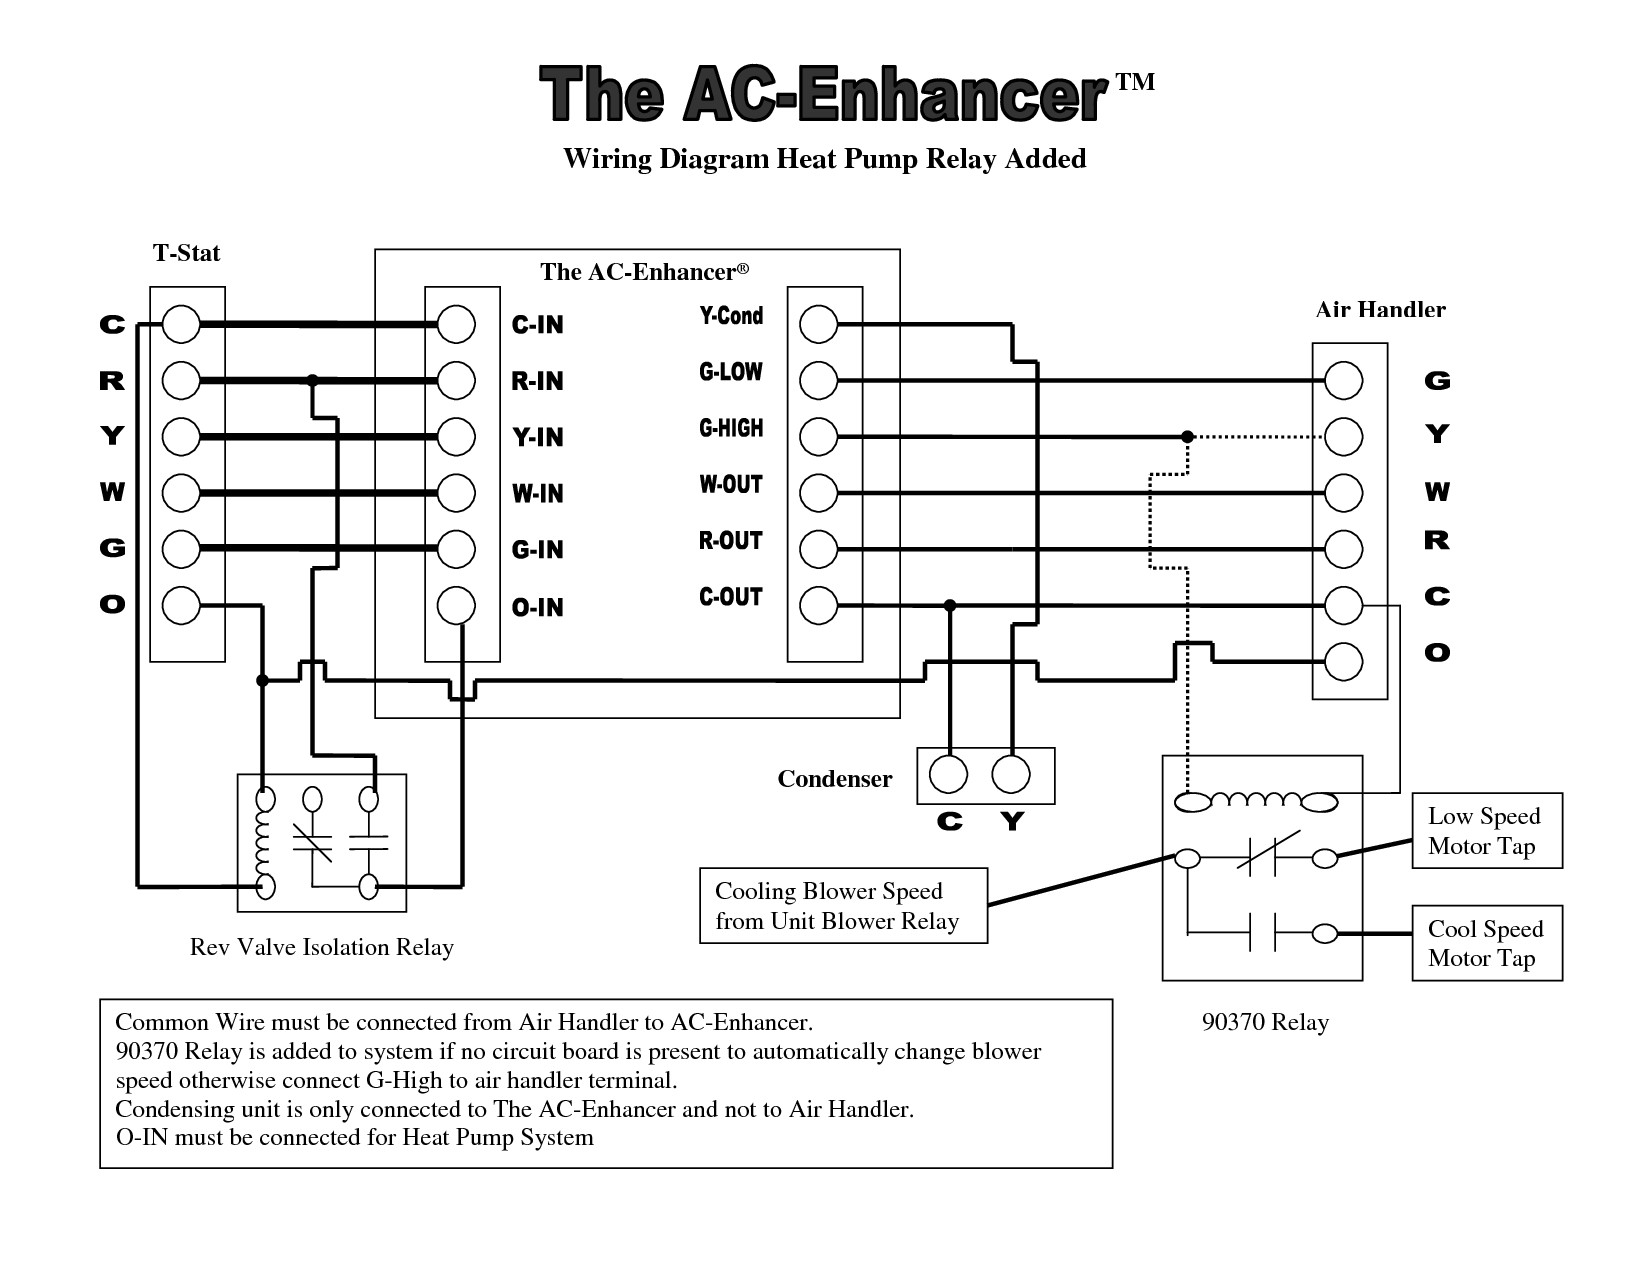 Heat Pump Wiring Diagram Carrier Wiring Diagrams Blurts Of Heat Pump Wiring Diagram Inspirational Electric Heat Strip Wiring Diagram Diagram